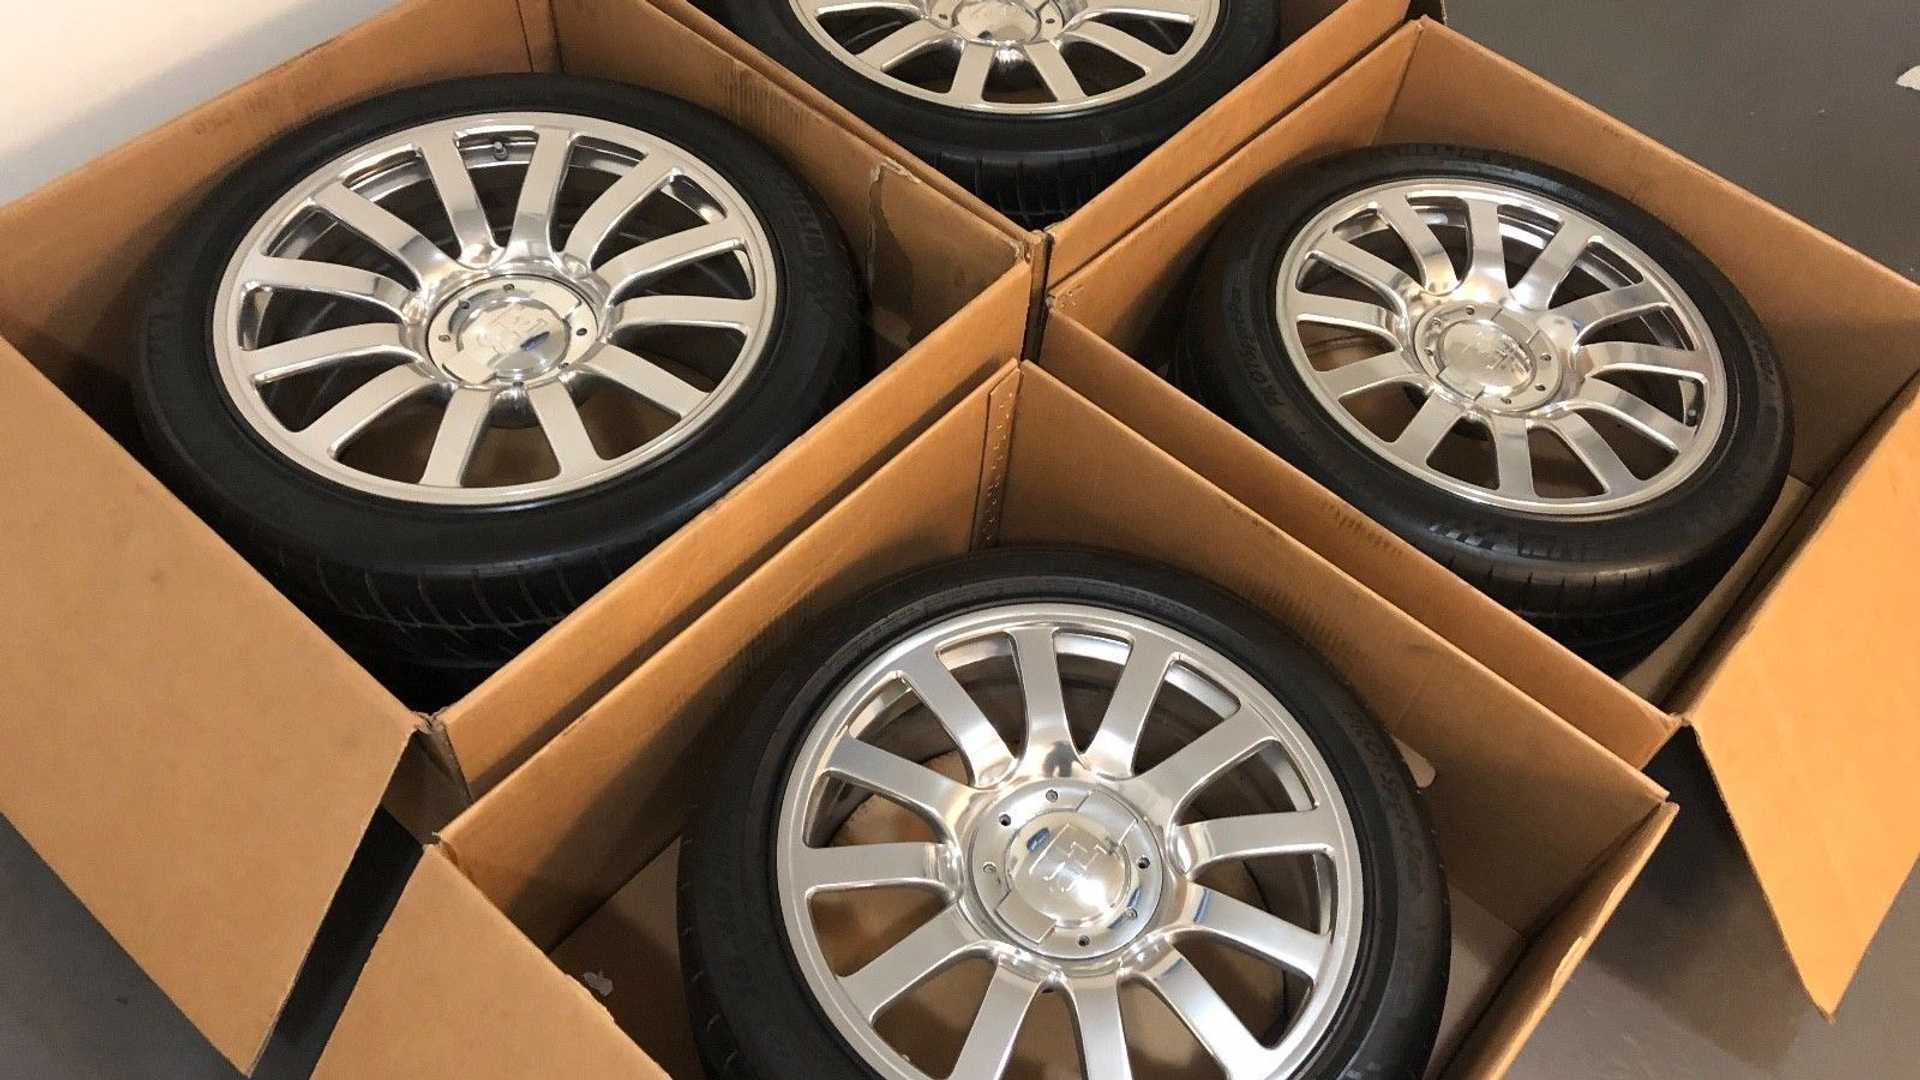 Bugatti Veyron Wheel And Tire Set Yours For Just 100 000